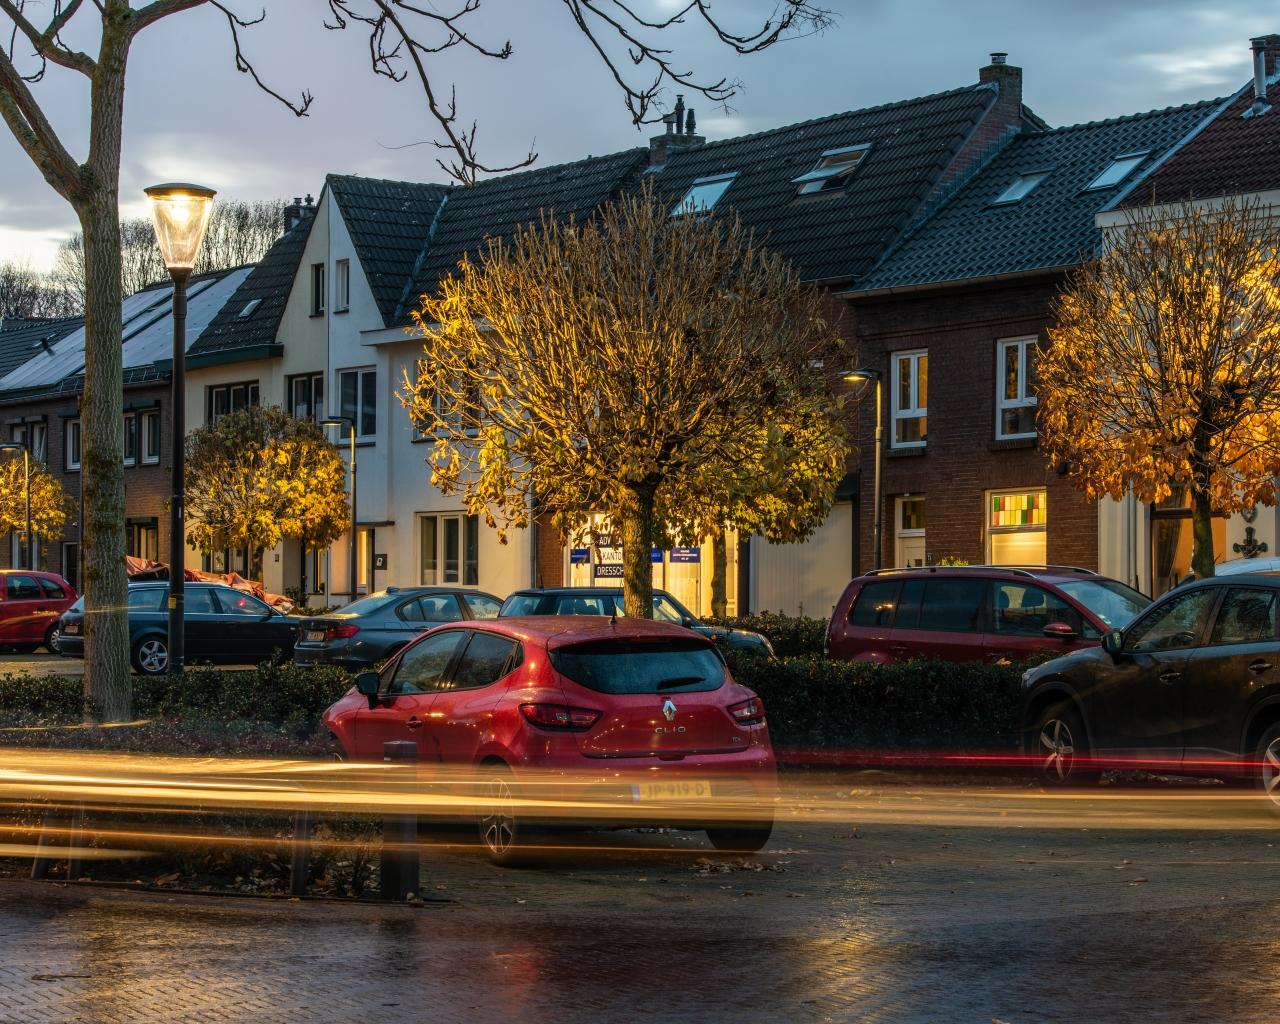 FLEXIA provides a sustainable lighting solution to help the town of Brunssum achieve a circular economy